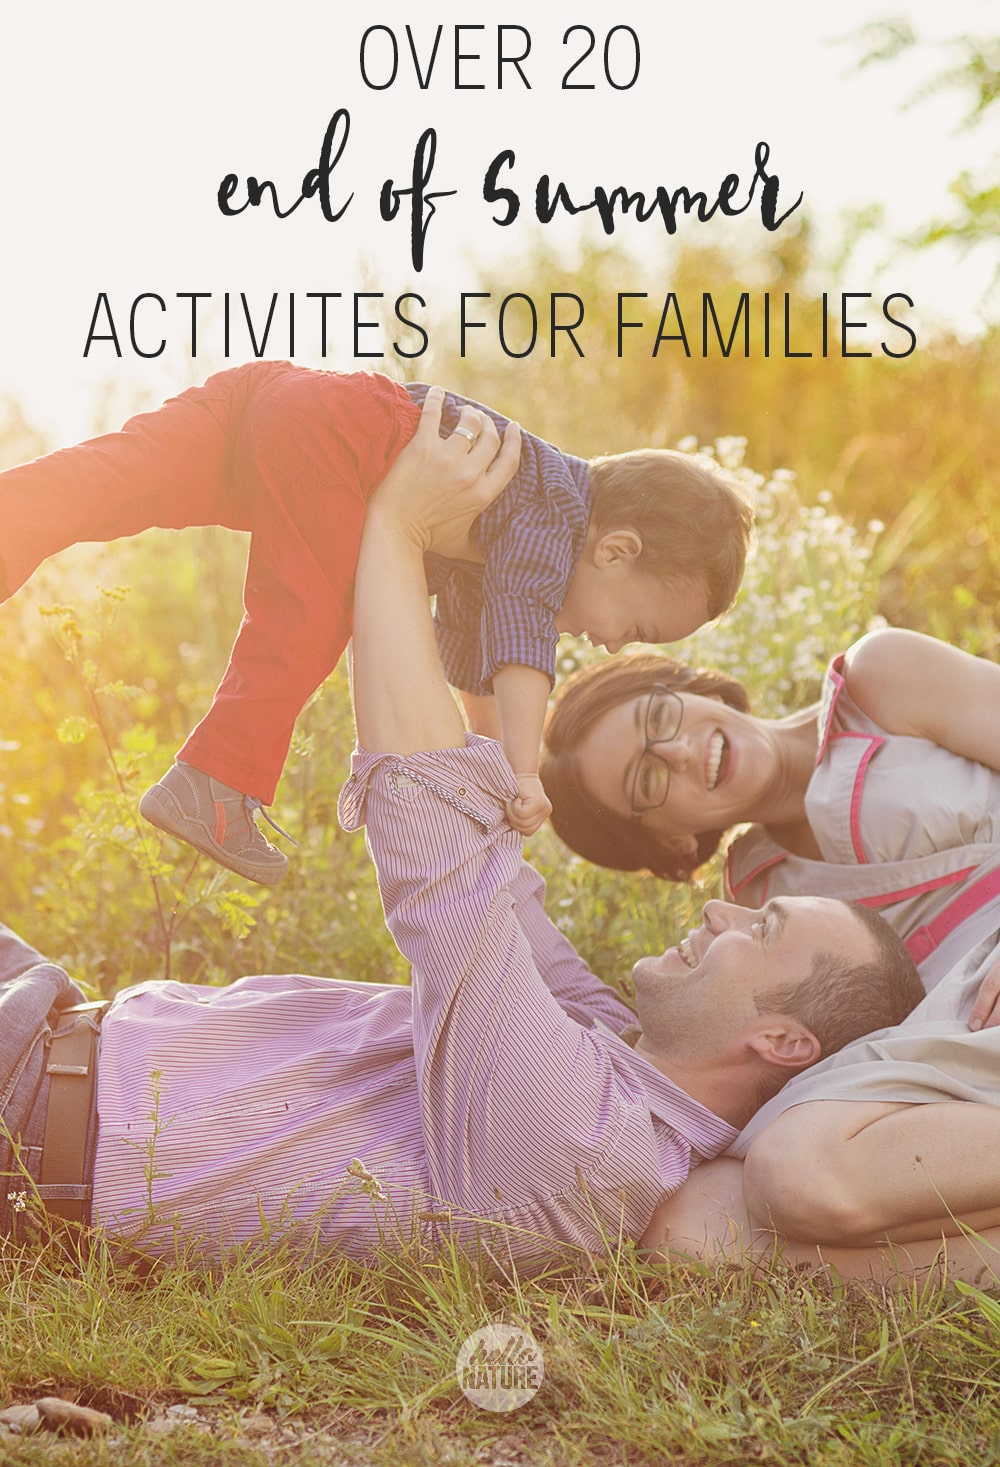 Summer is coming to an end! Here are 21 End of Summer Activities for Families to make the most of the warmer months before fall comes! #EndOfSummer #FamilyActivities | Family Activities | Summer Family Activities